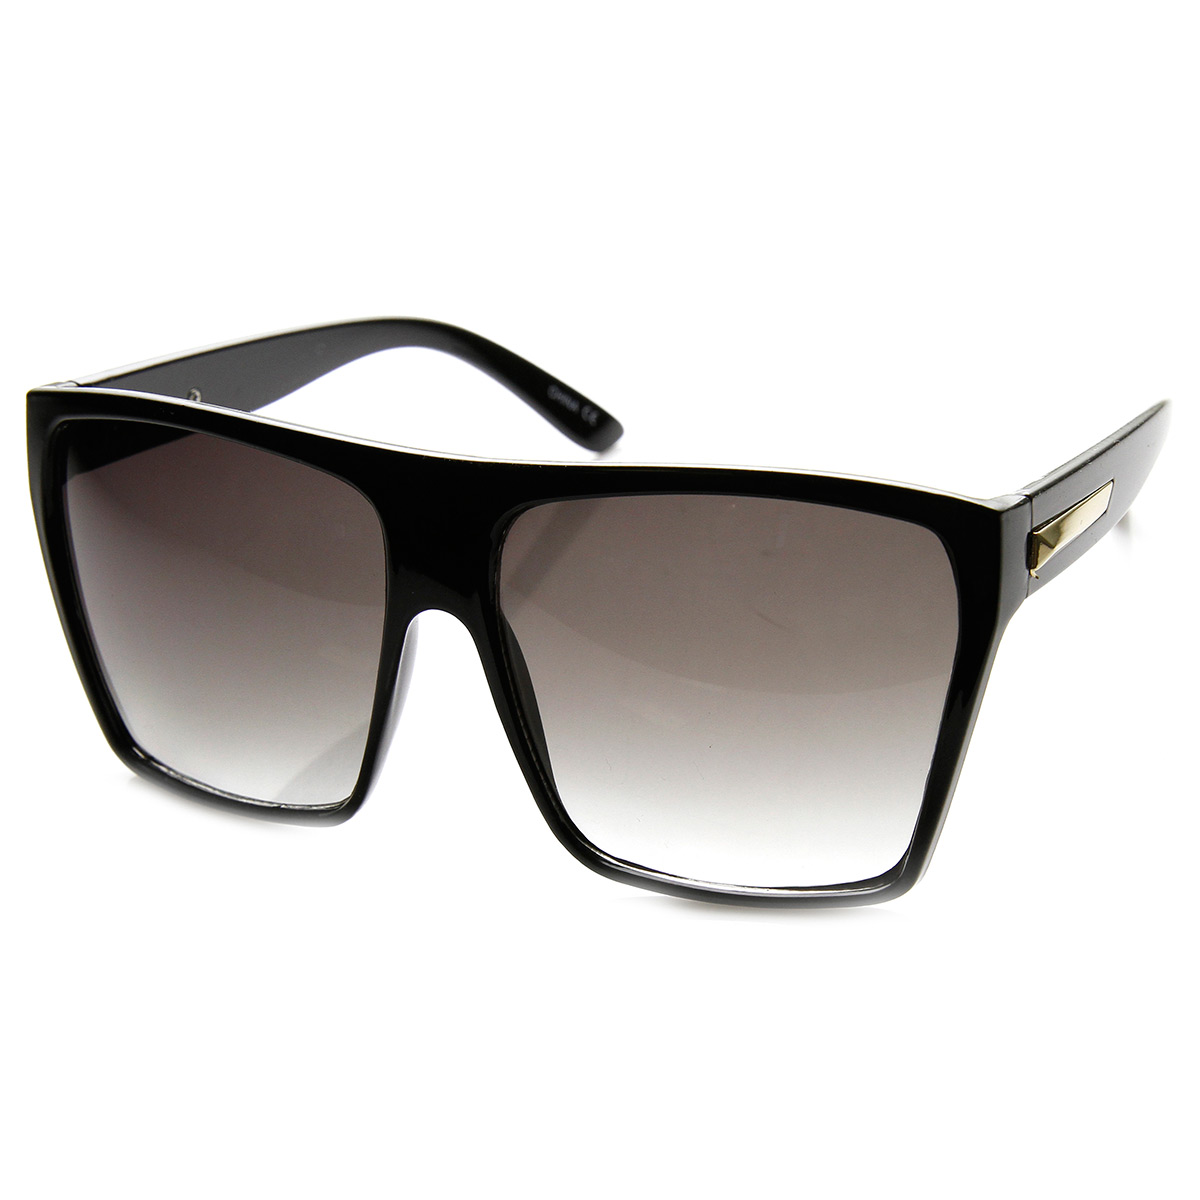 Large Oversized Retro Fashion Square Flat Top Sunglasses